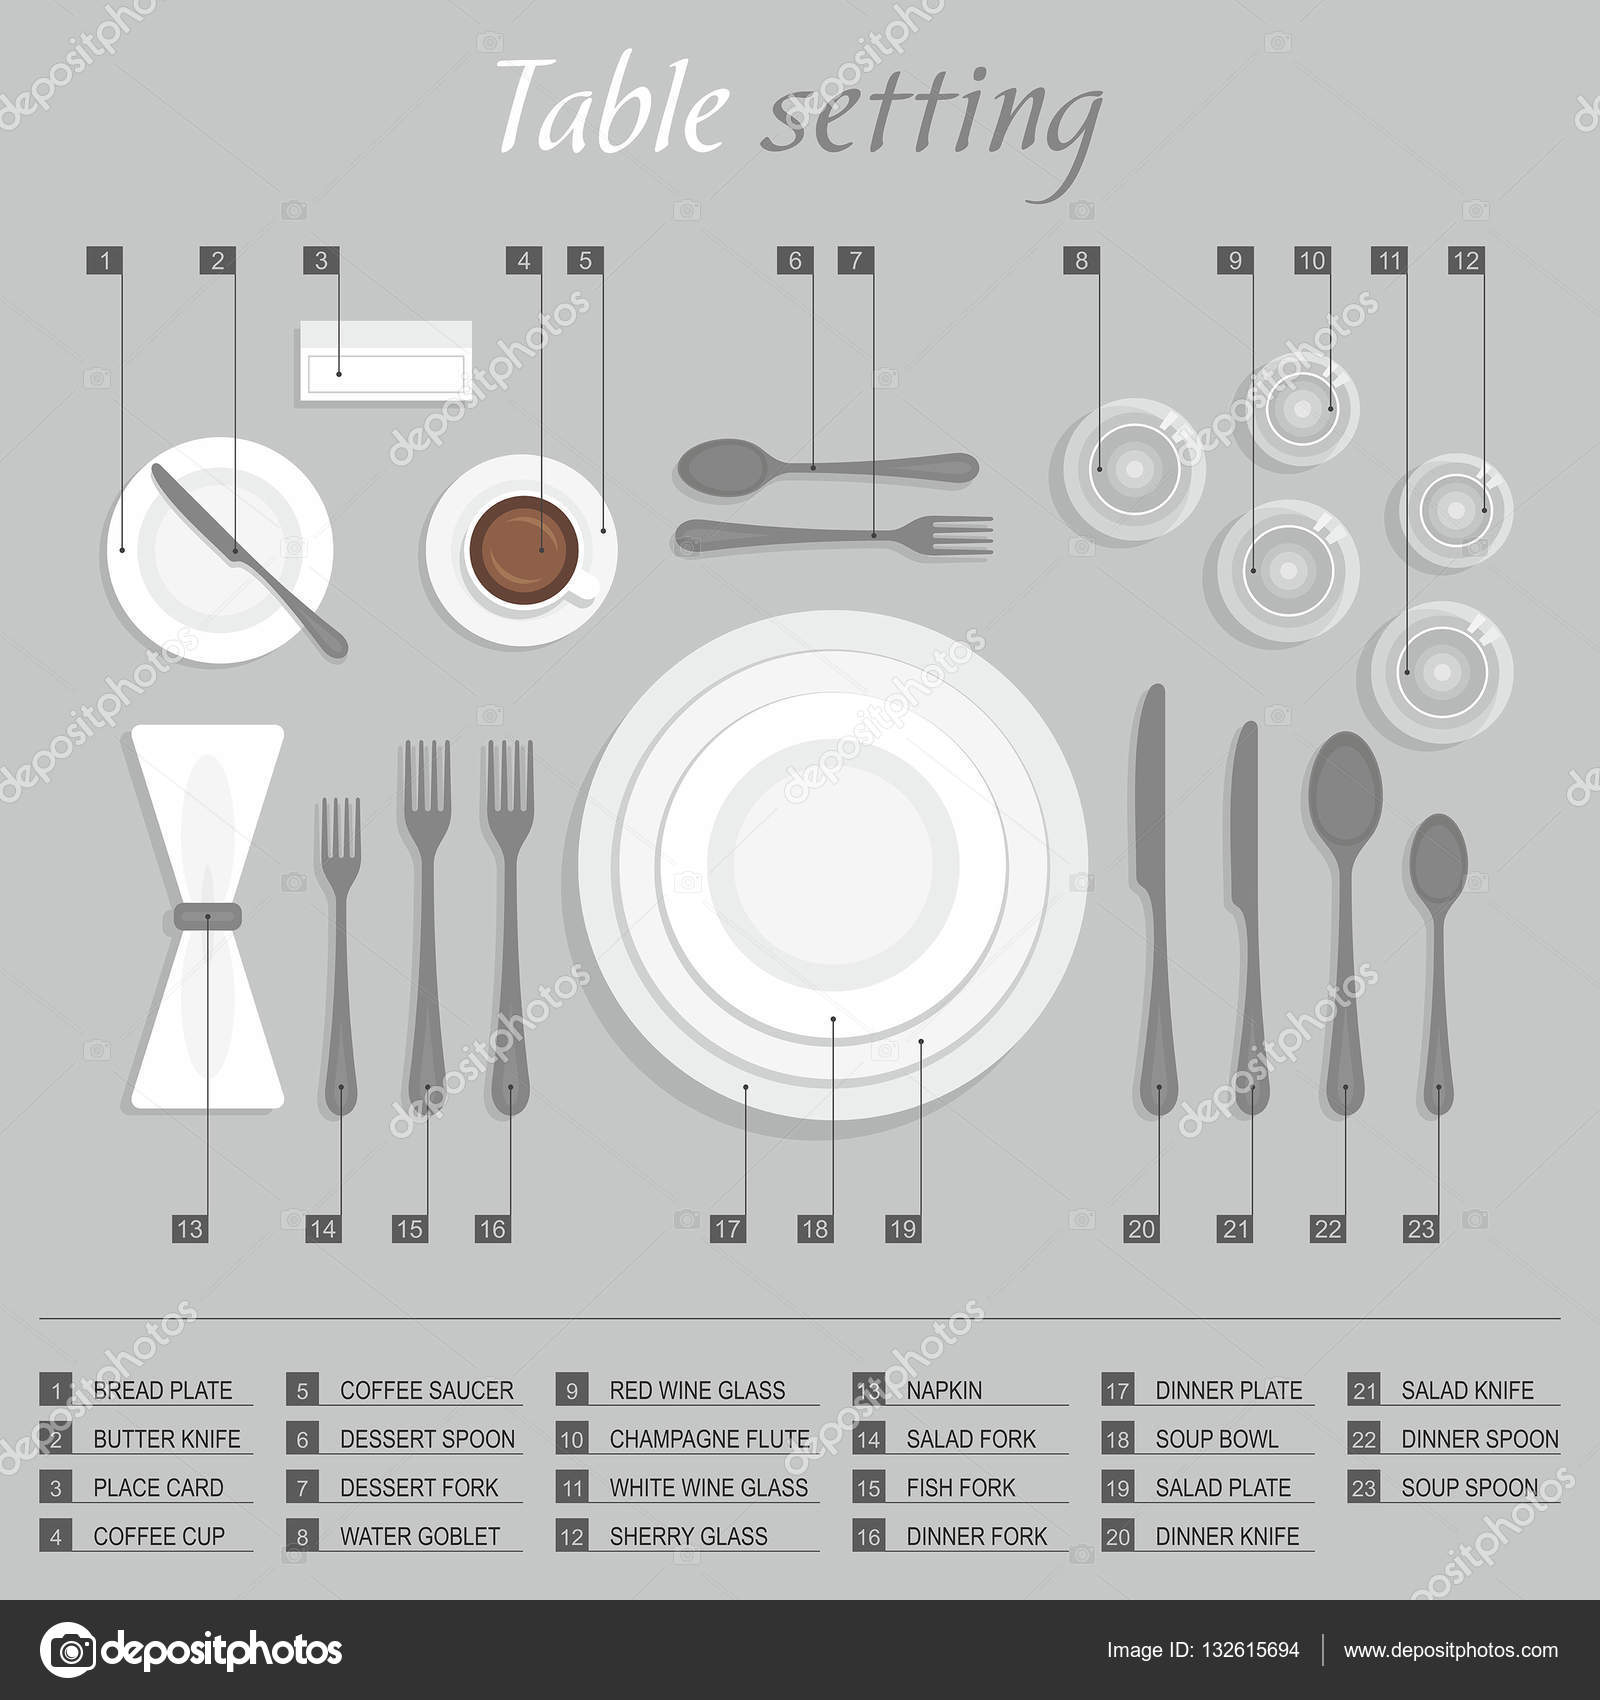 Table setting infographic — Stock Vector © Volykievgenii #132615694